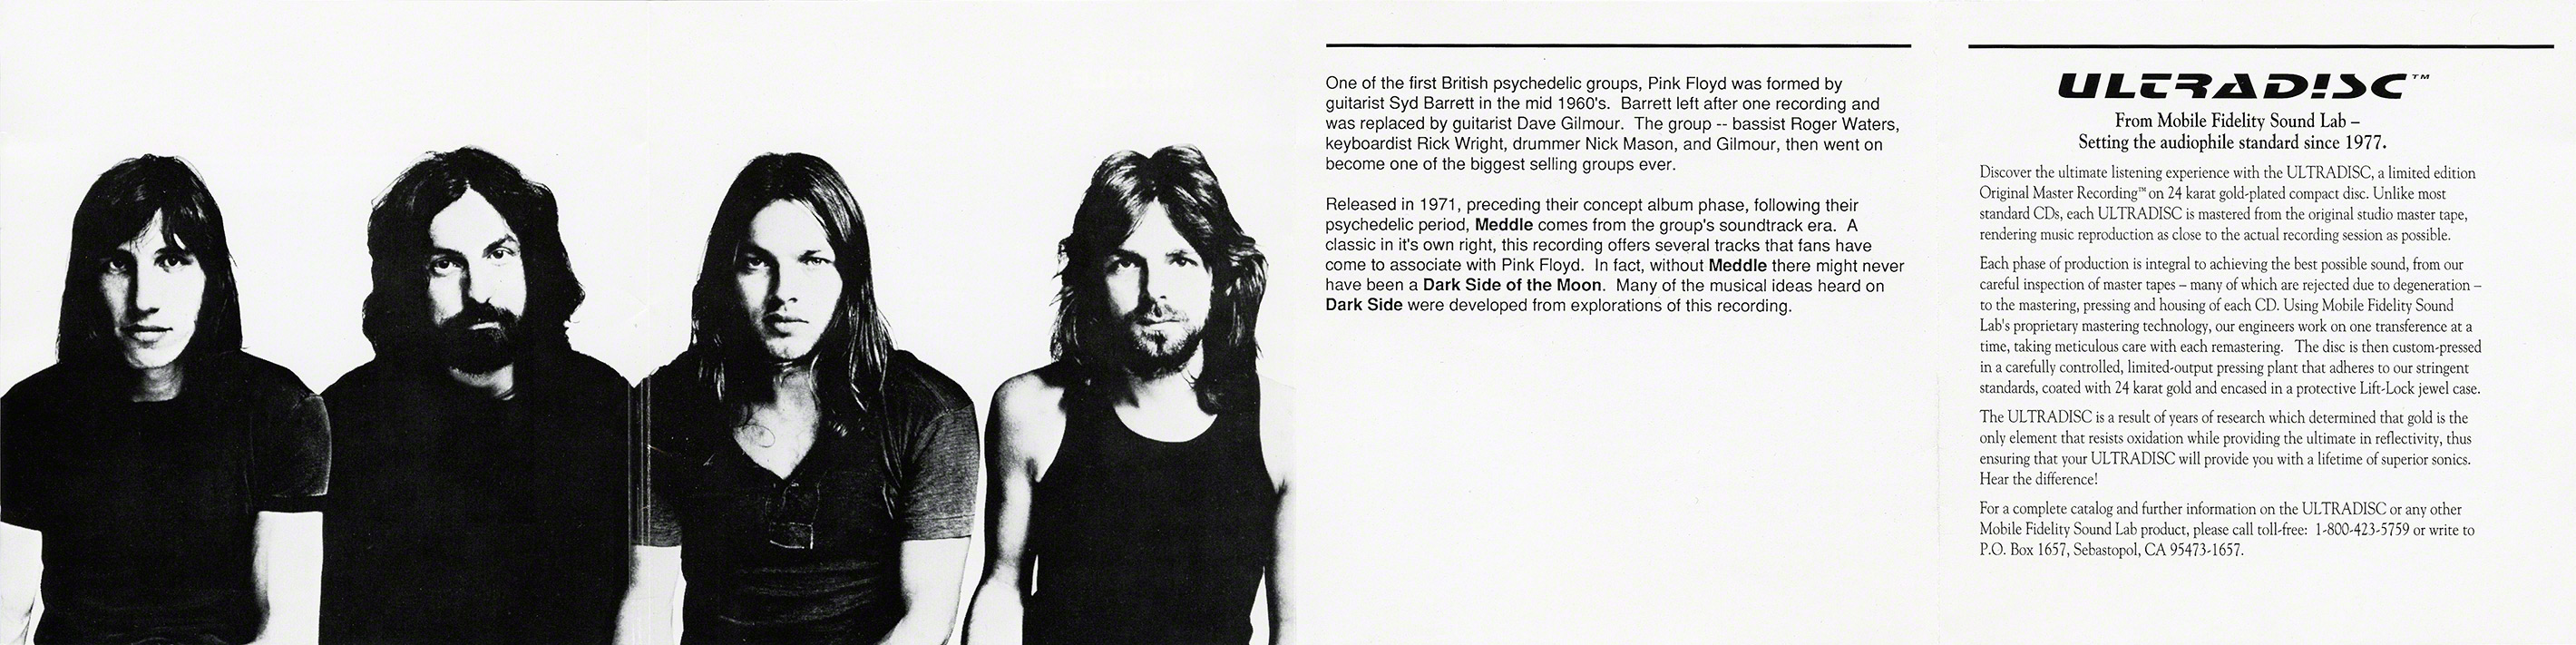 Pink Floyd Archives-MFSL Discography